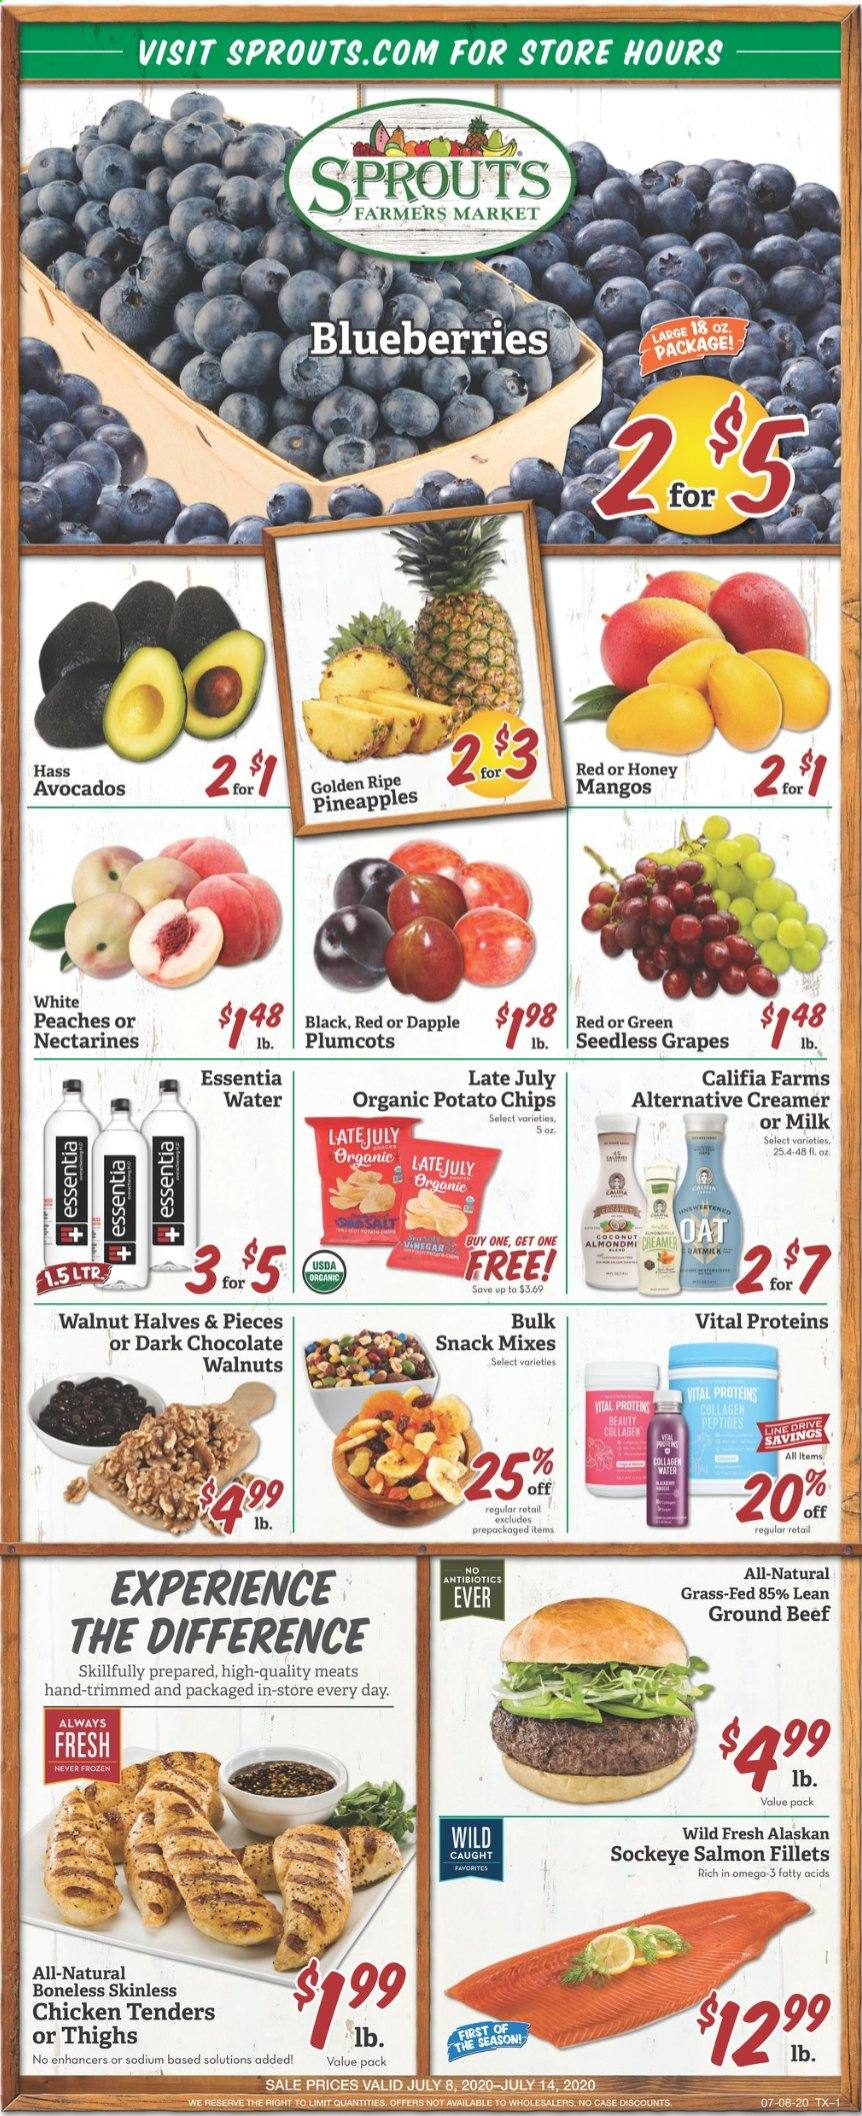 Sprouts Flyer - 07.08.2020 - 07.14.2020 - Sales products - avocado, beef meat, bittersweet chocolate, blueberries, grapes, ground beef, mango, milk, nectarines, salmon, seedless grapes, walnuts, honey, pineapple, potato chips, chicken, peaches, omega-3, organic, chicken tenders, chips, chocolate, coconut, creamer, snack. Page 1.